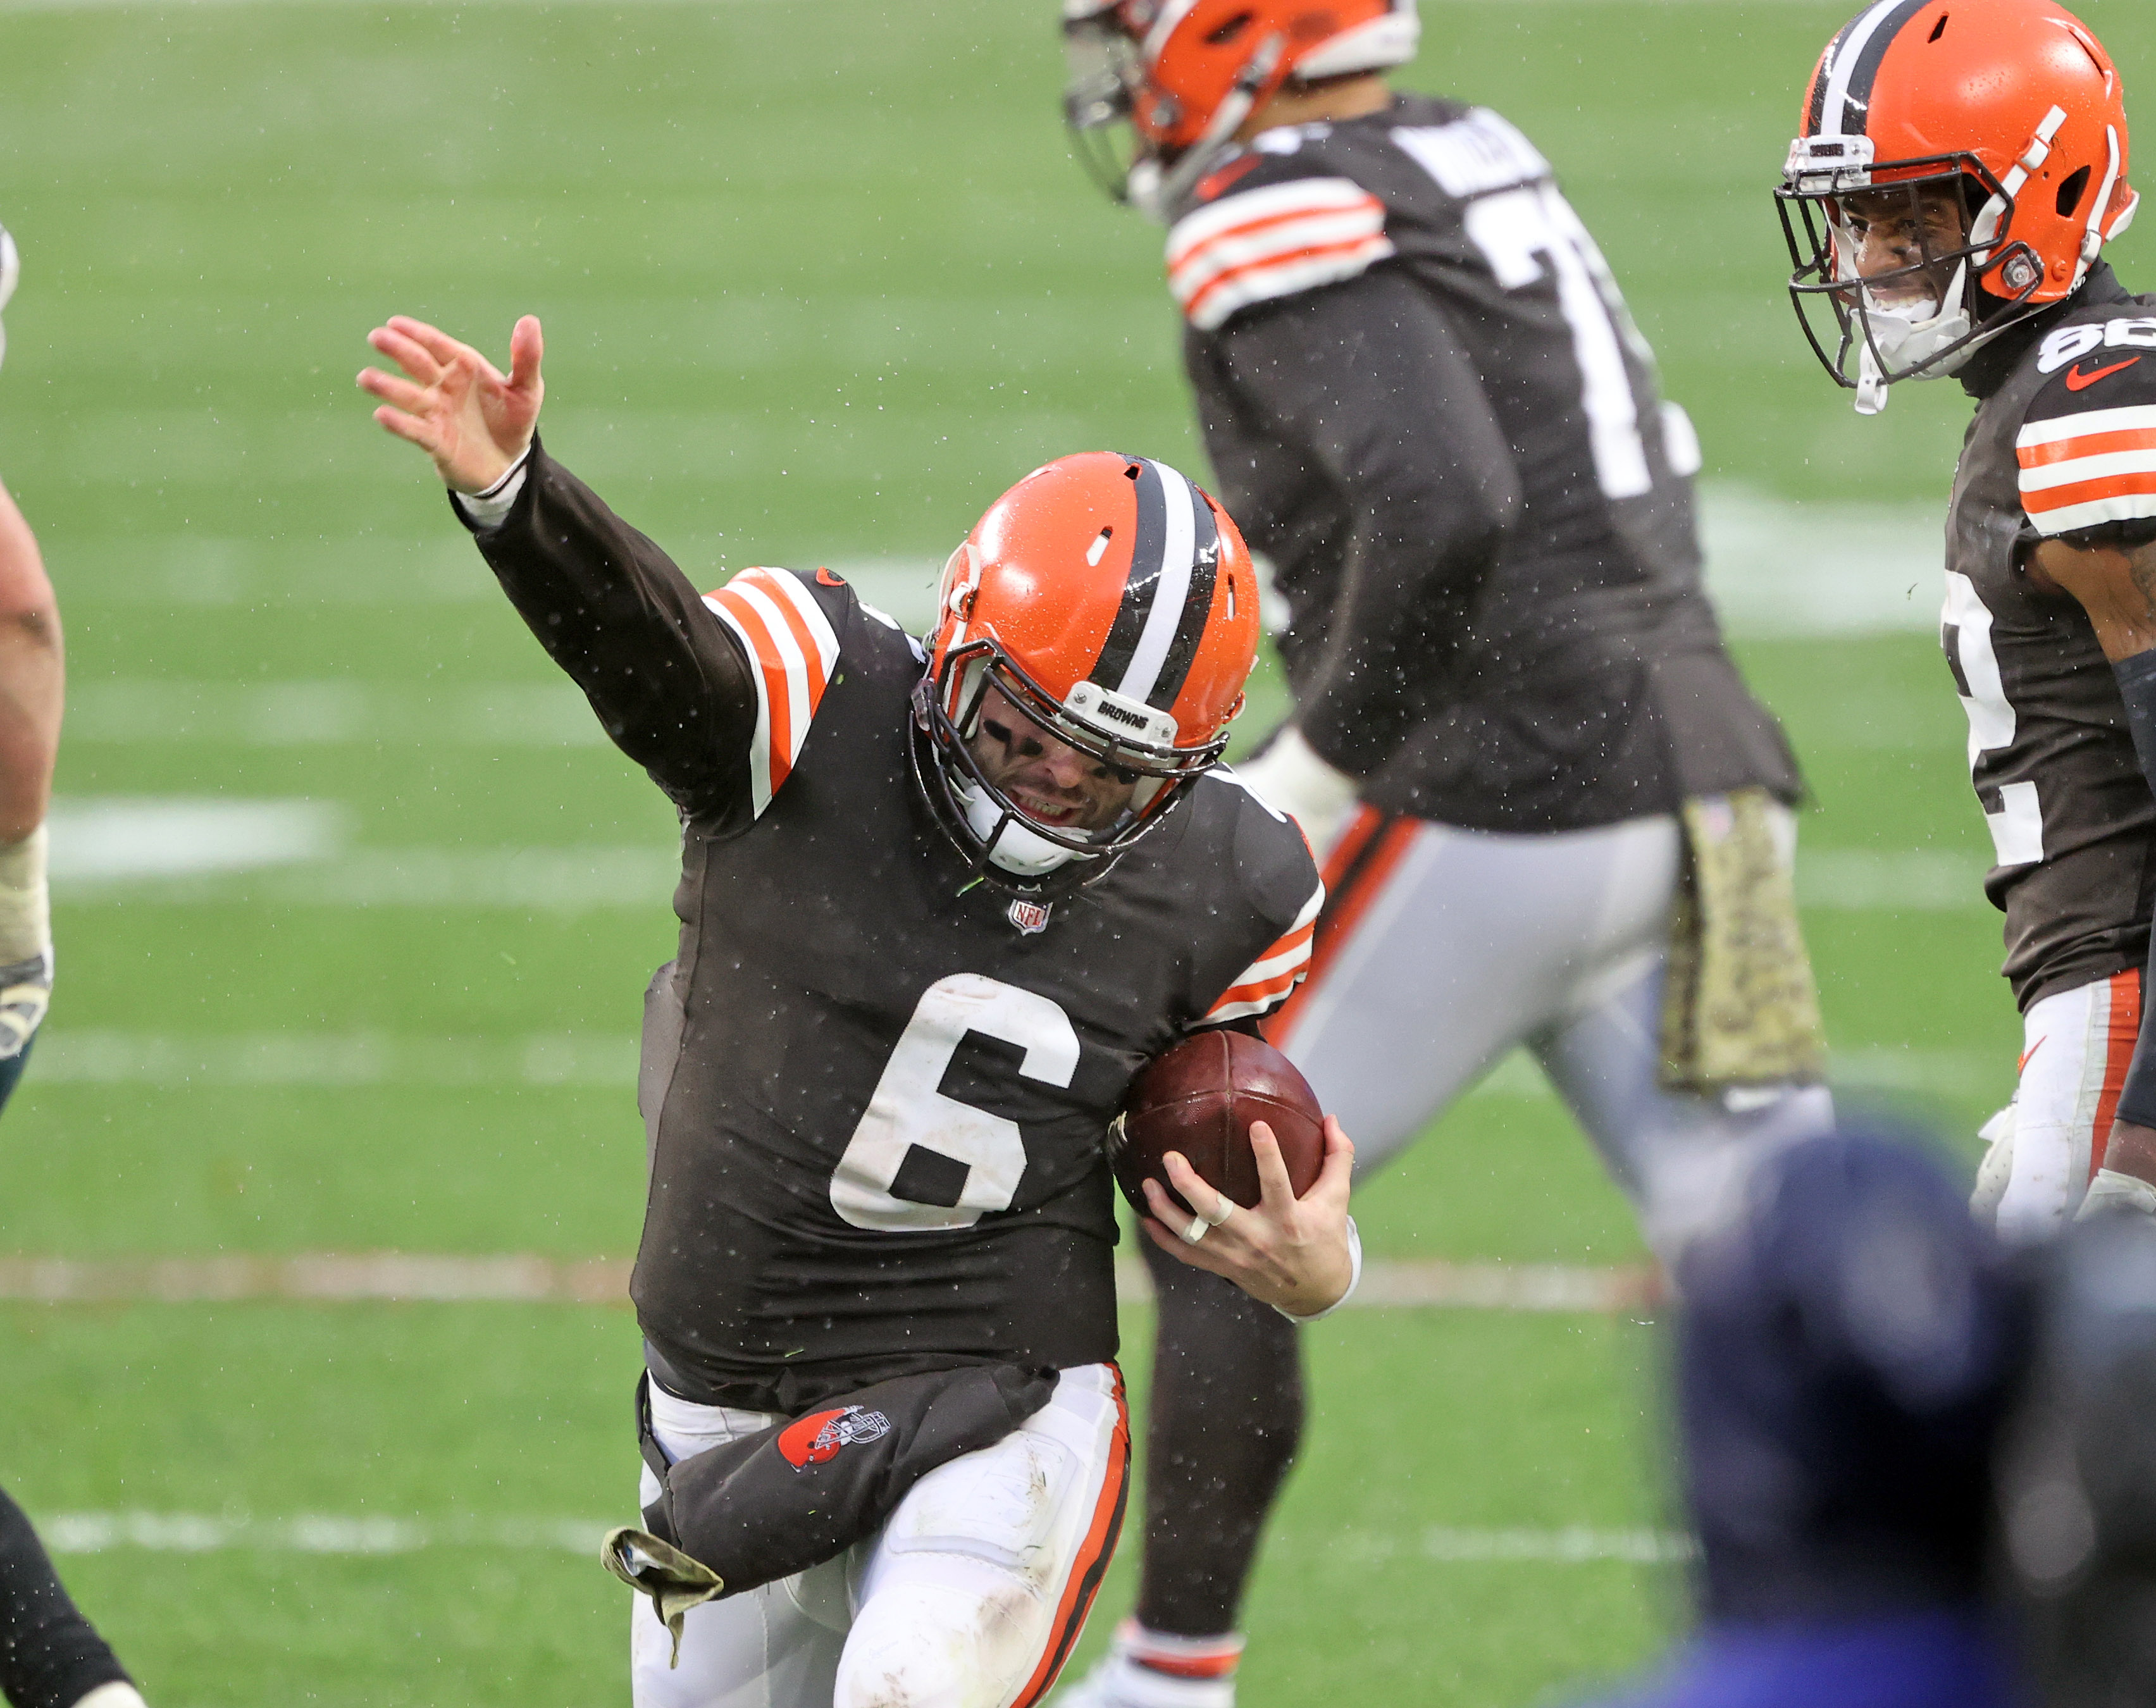 Baker Mayfield wants end zone throws back, but no picks in his last 3  games; Myles Garrett tied for sack lead: Browns Insider - cleveland.com